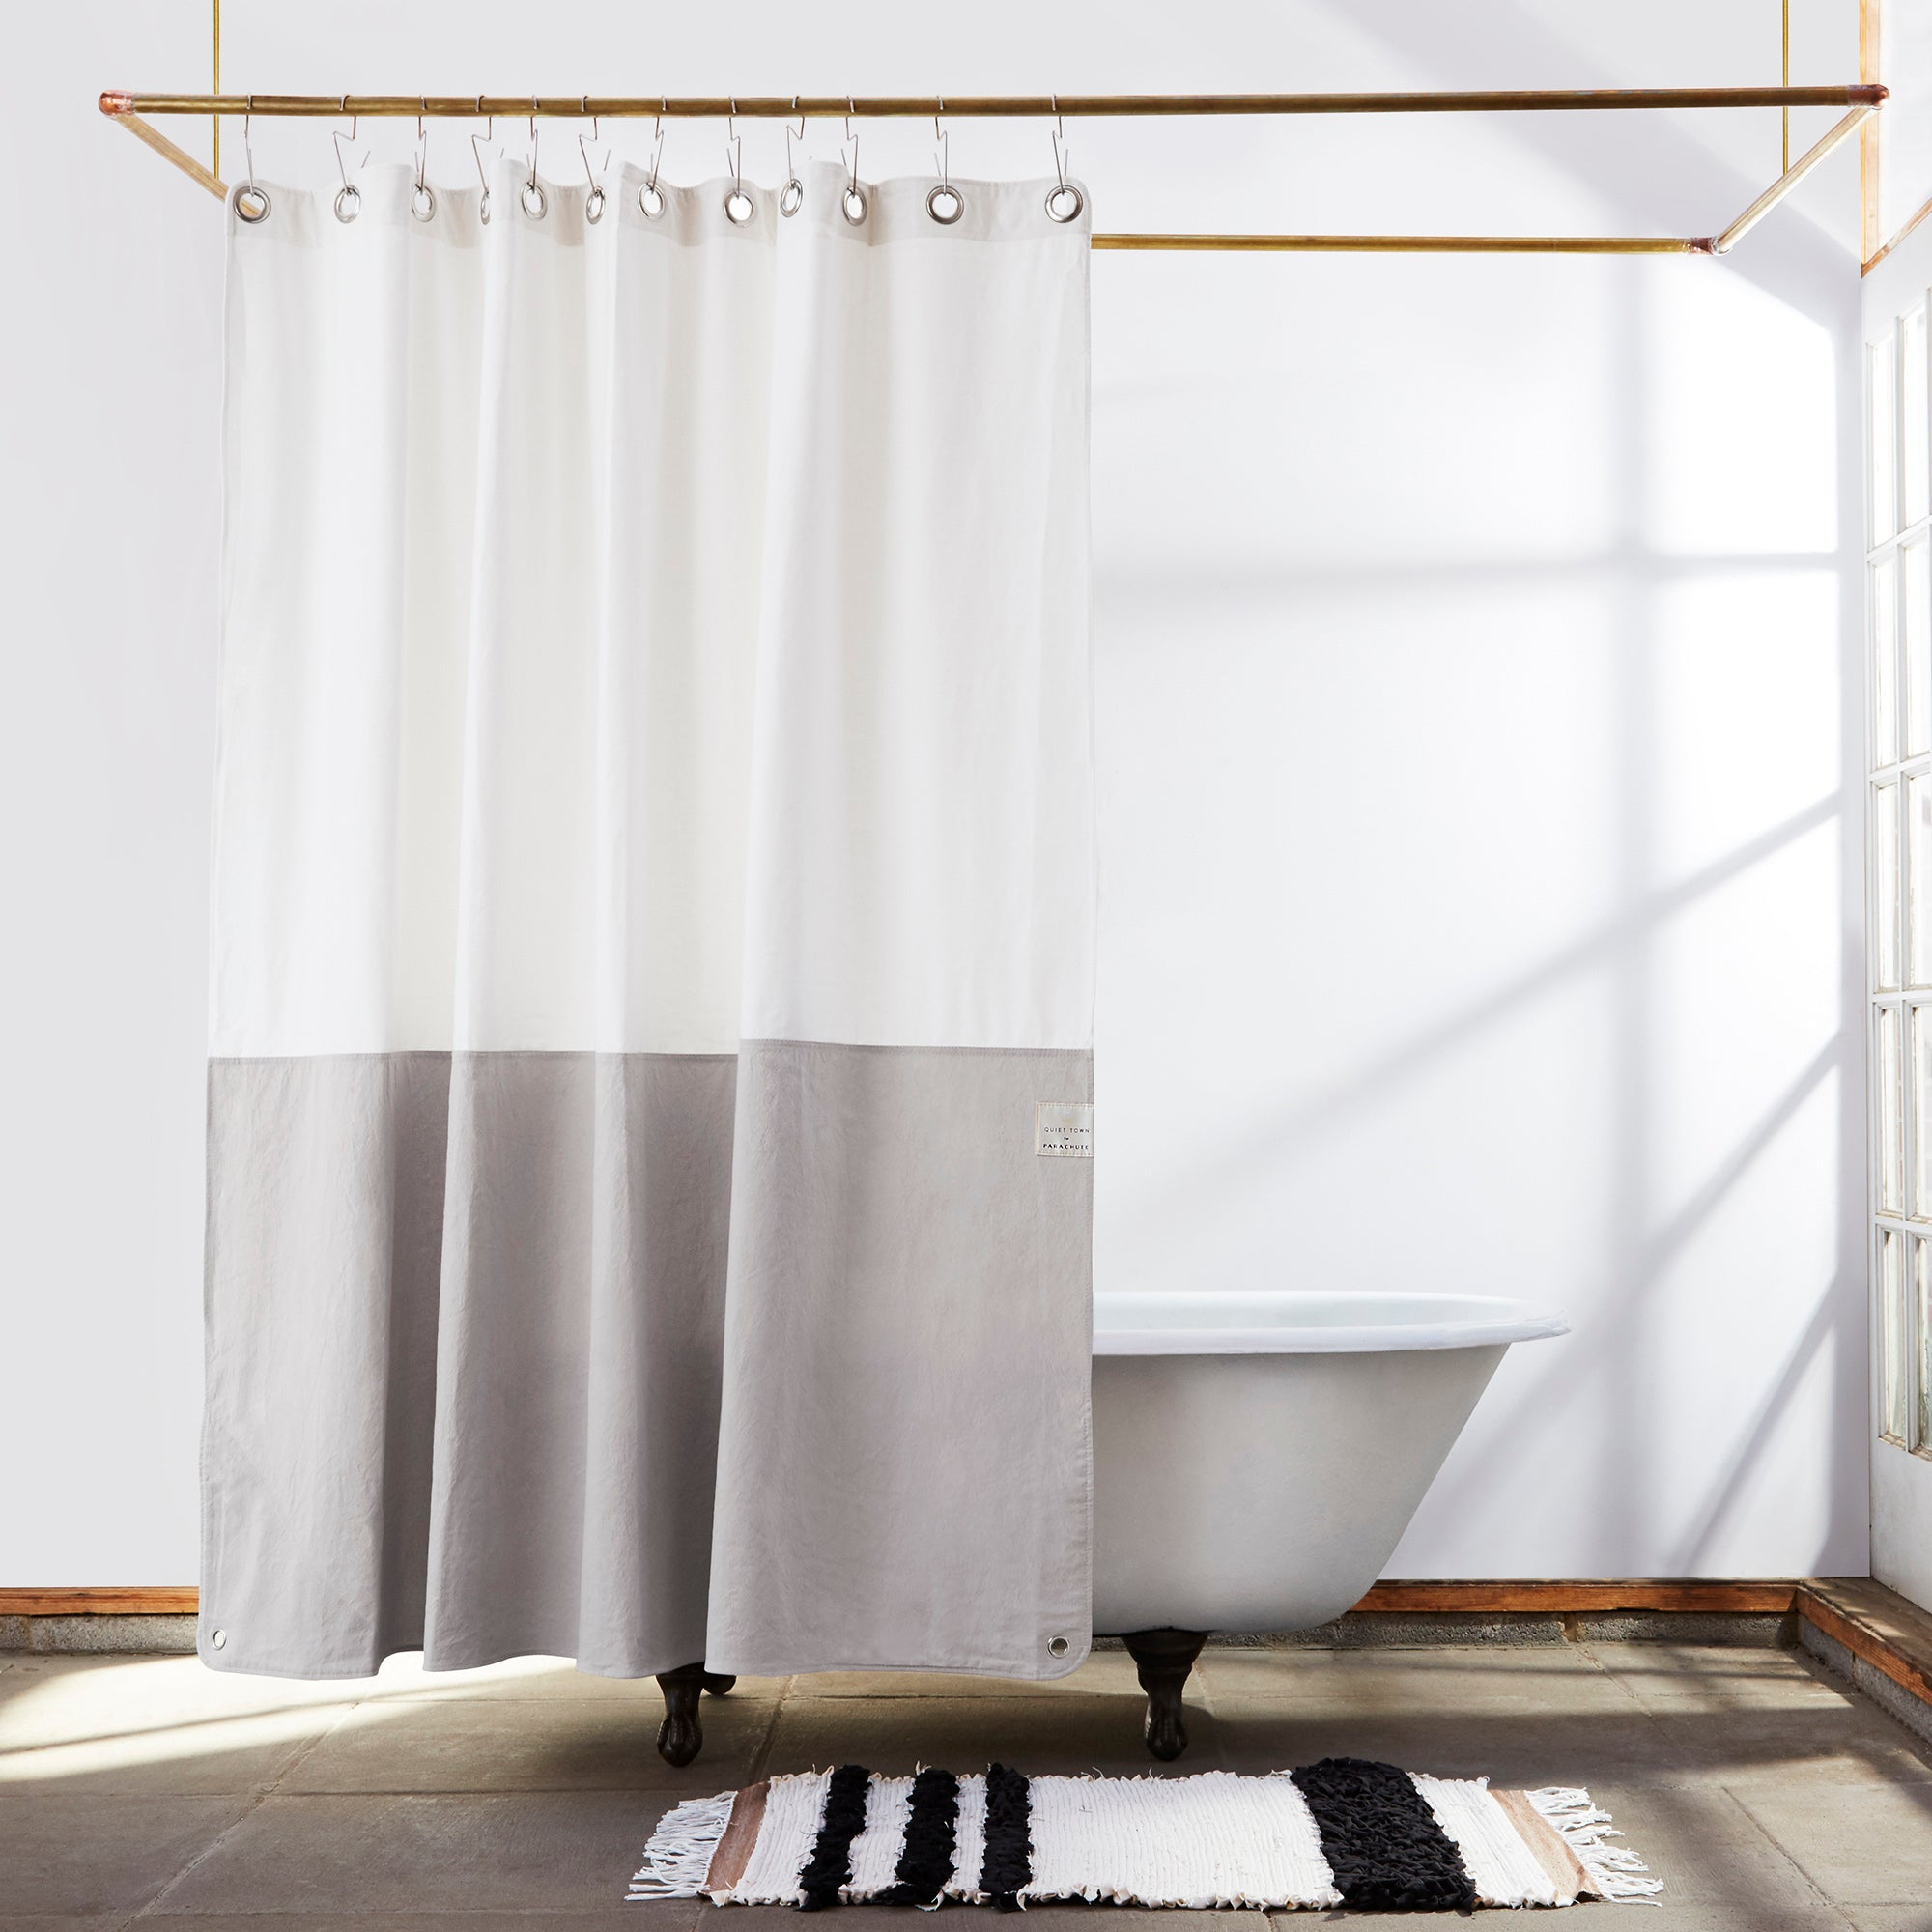 CANVAS SHOWER CURTAIN - ORIENT DRIFTWOOD